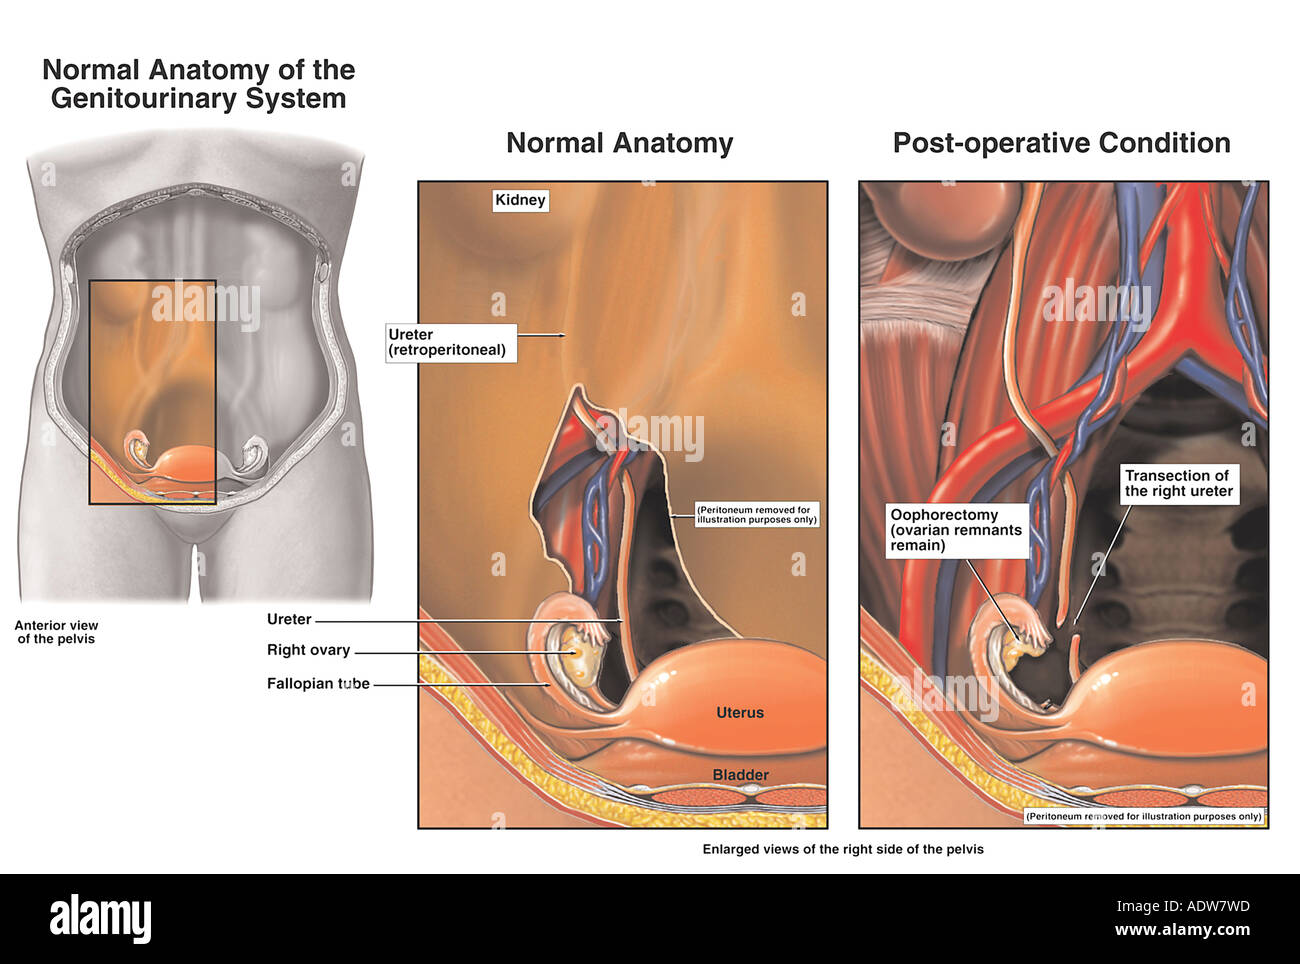 Ovaries Laparoscopic Oophorectomy with Iatrognic Physician related Transection Injury of the Right Ureter Stock Photo